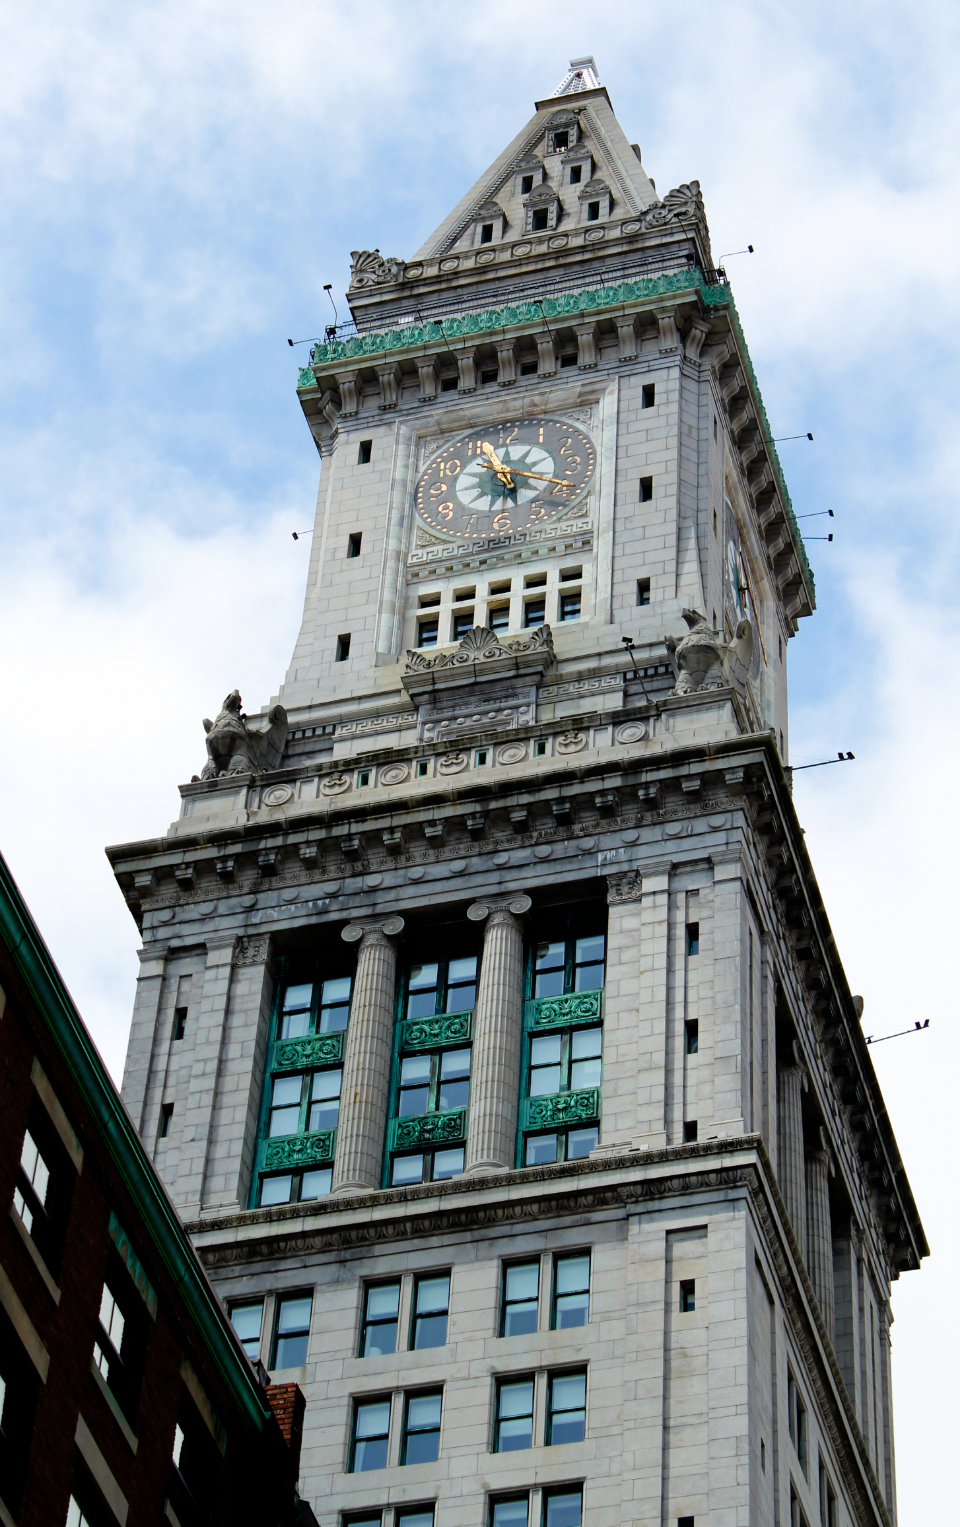 ornate clock building tower architecture historic time exterior glass windows tall sky city clock tower brick design